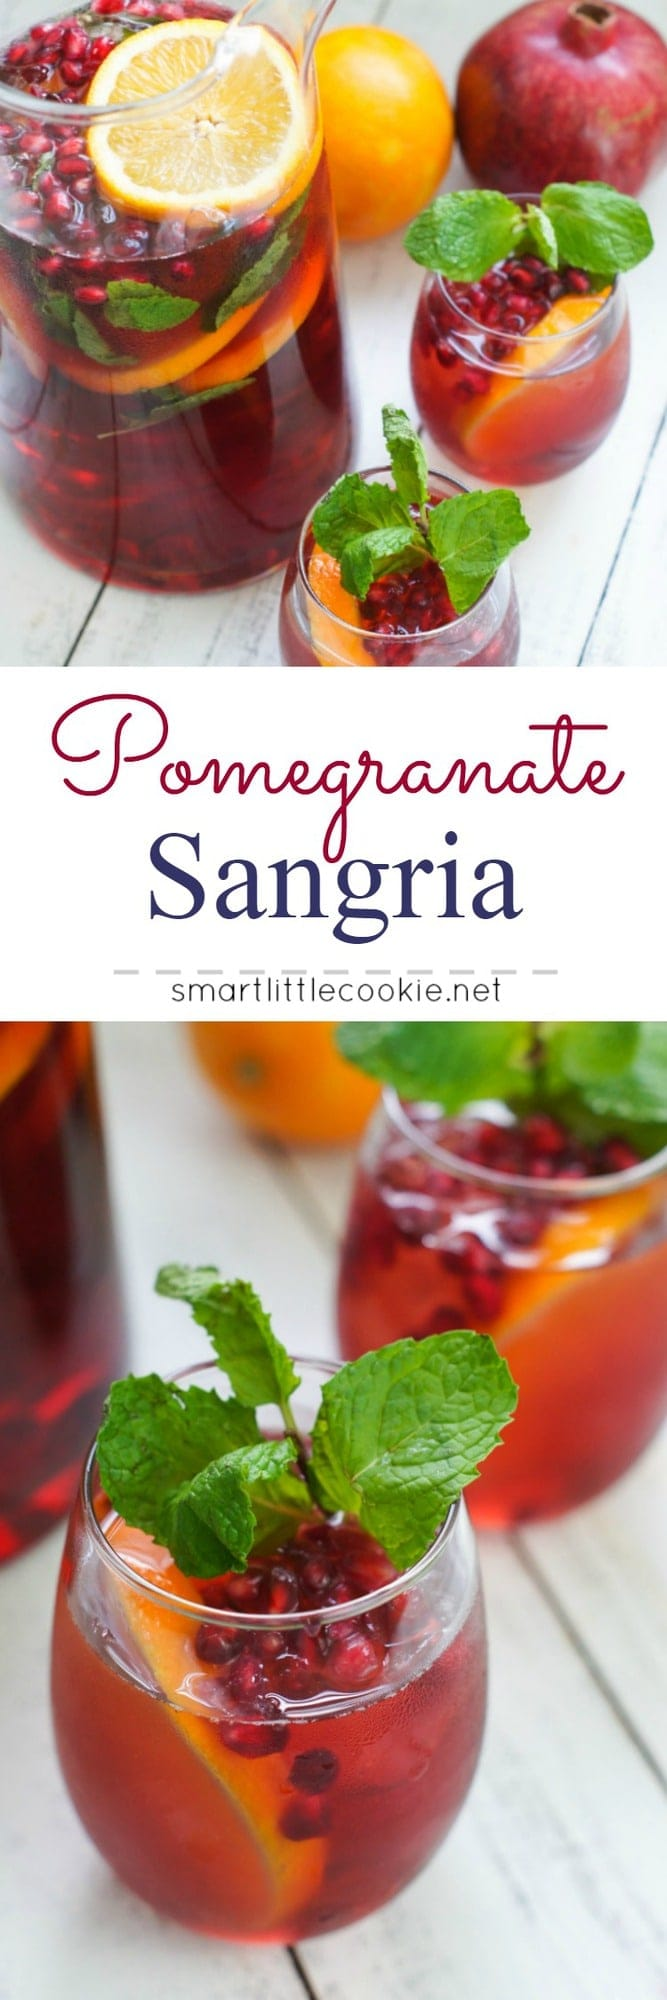 Pomegranate Holiday Sangria ~ Perfectly sweet with just the right fruit and wine combination, this Pomegranate Holiday Sangria is the perfect drink to serve at your holiday gathering.